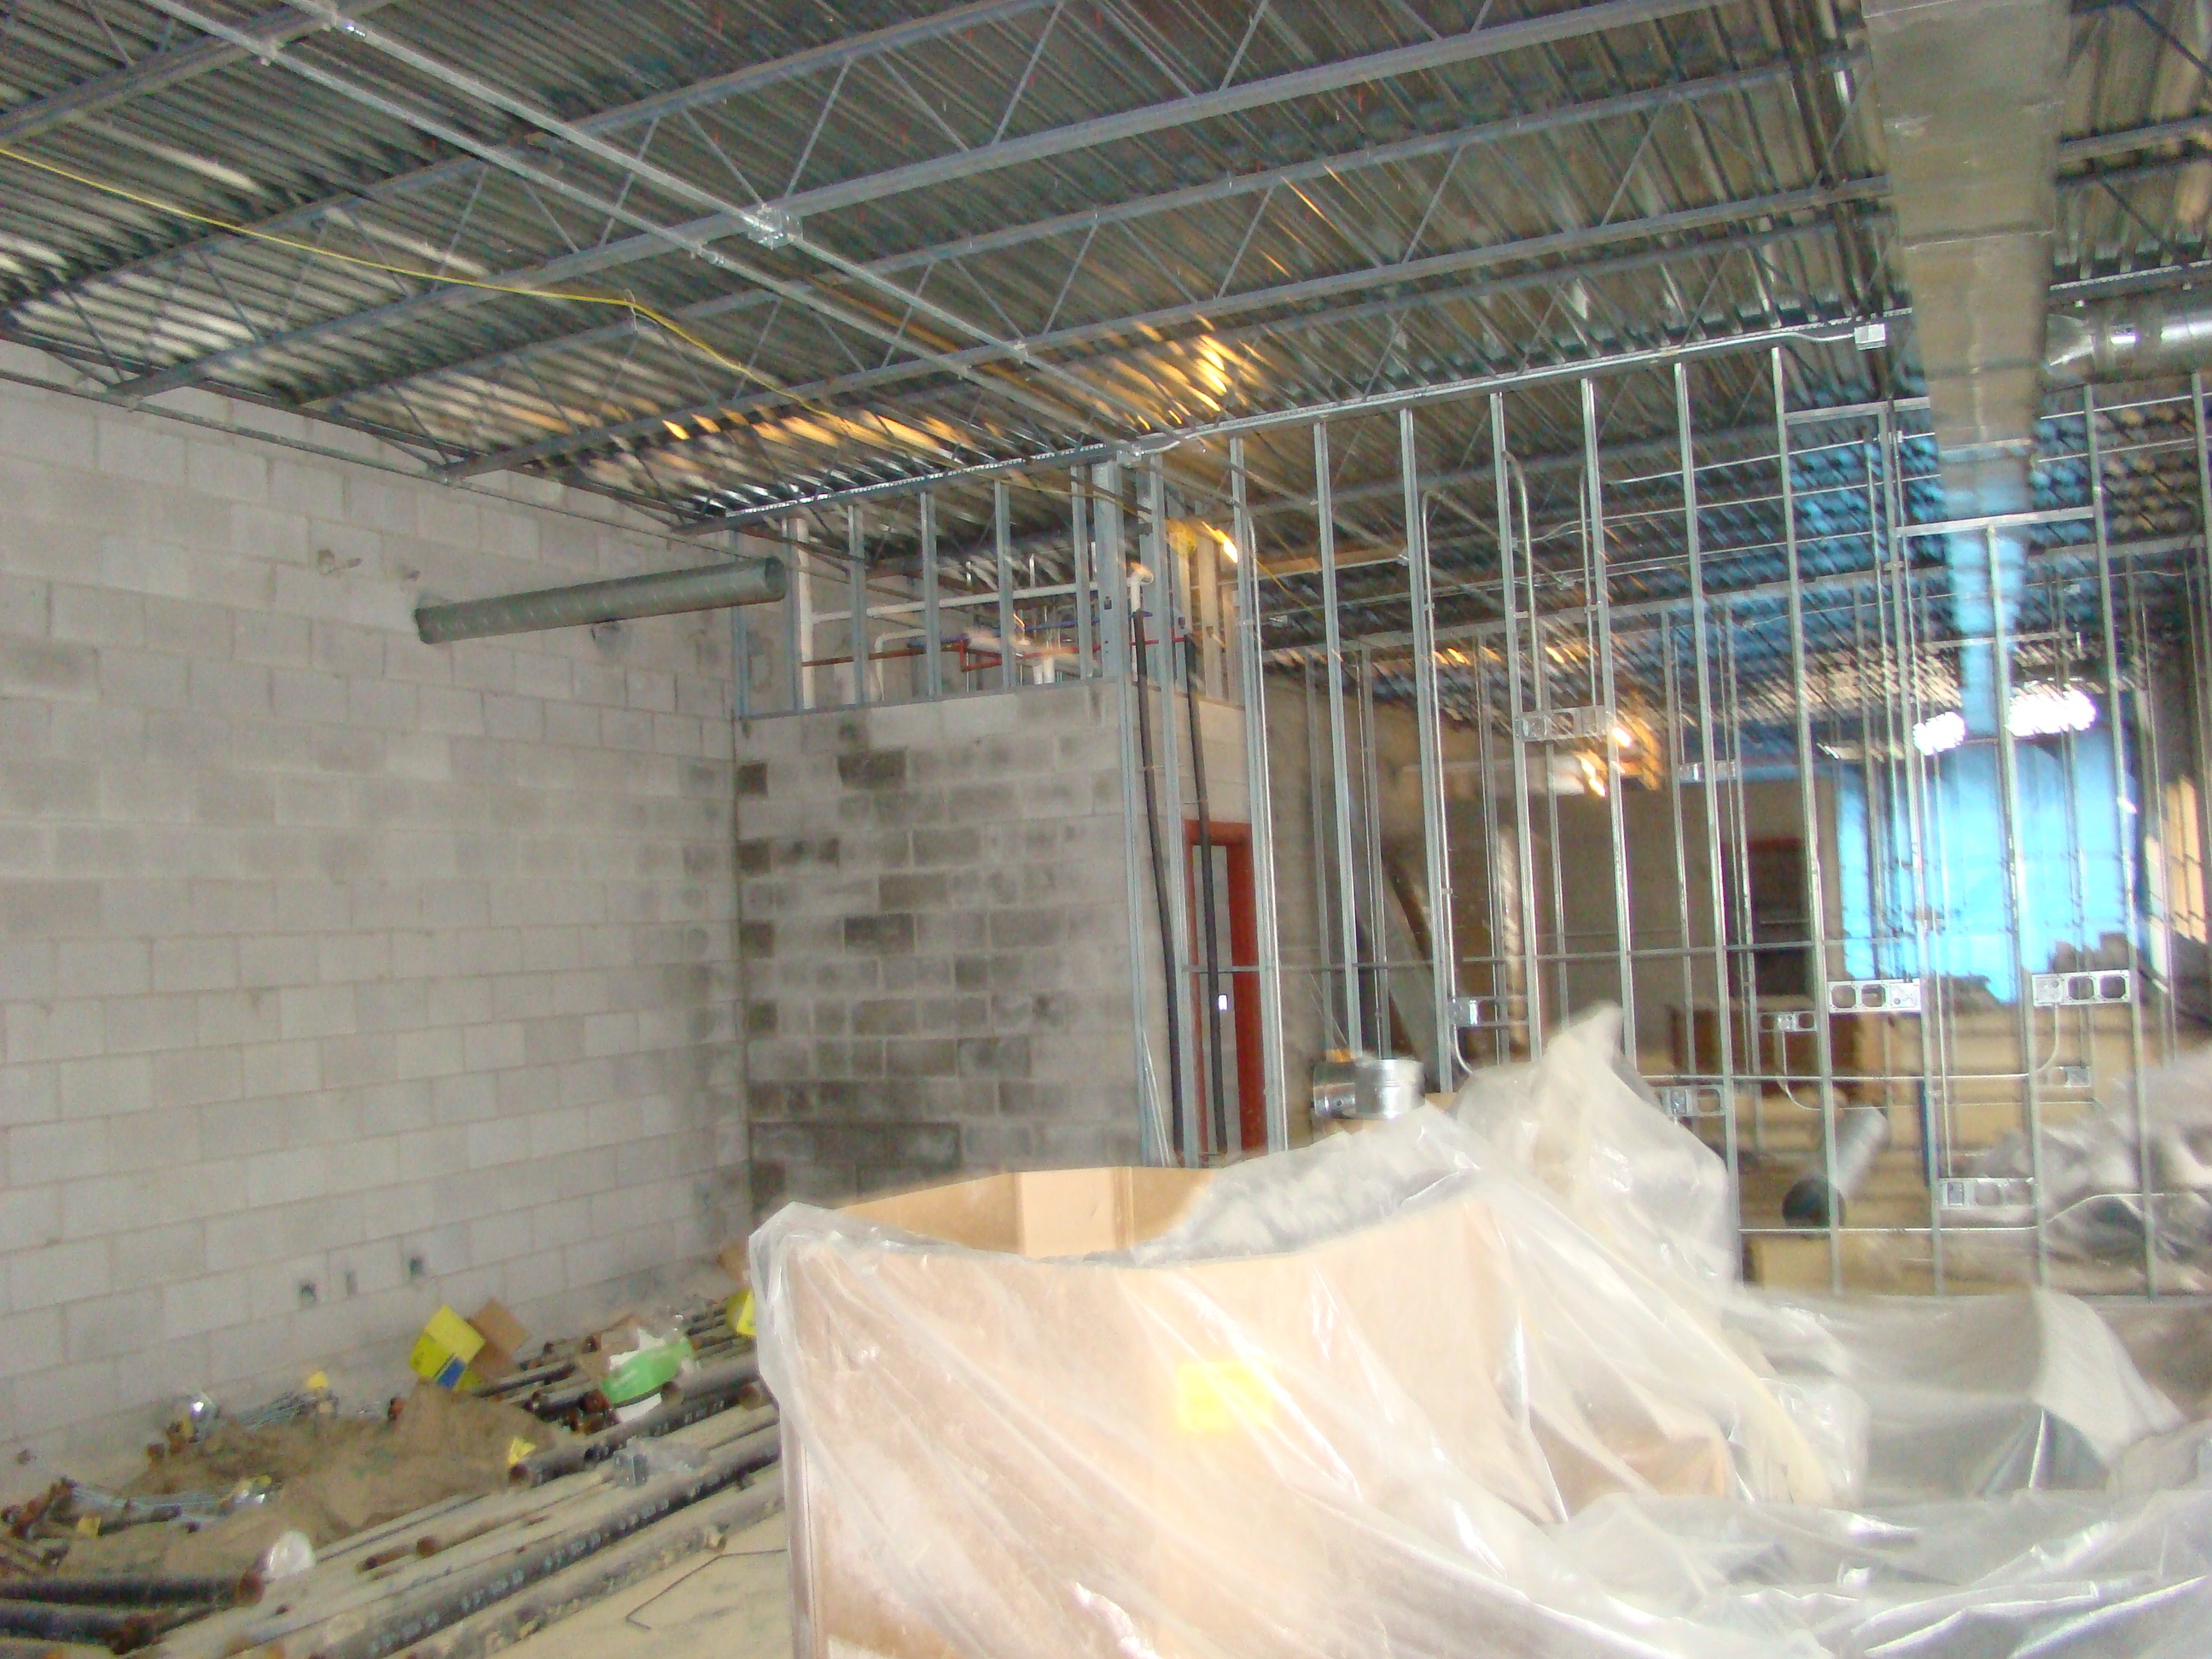 Nicholas County Elementary School Construction